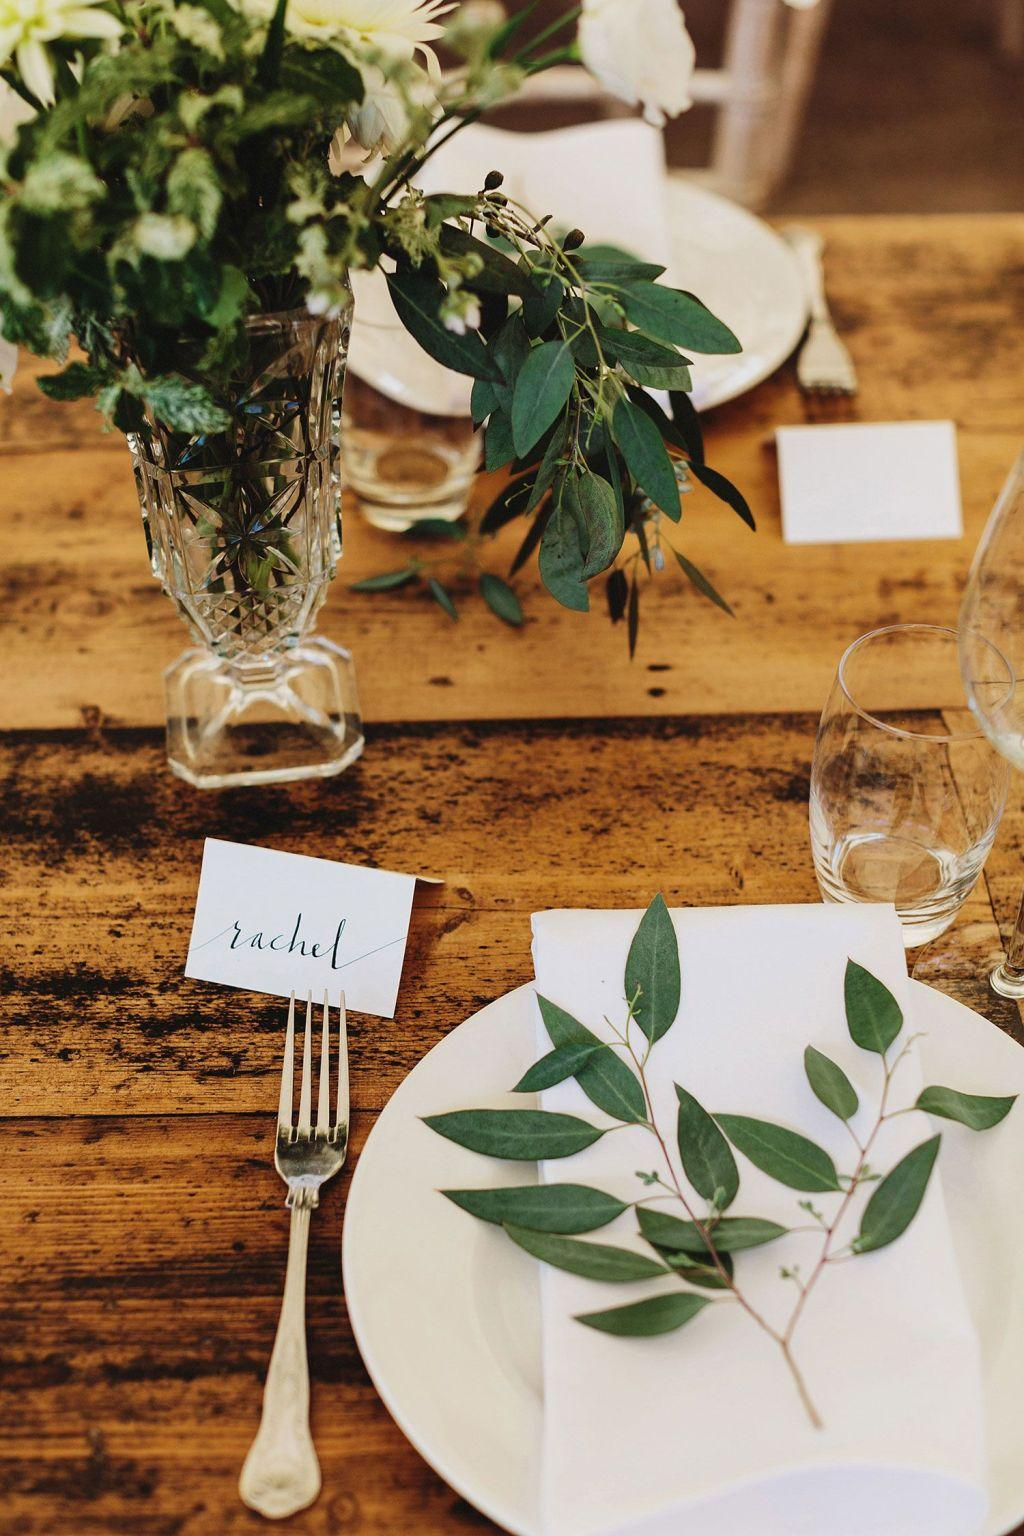 Simple Wedding Decor: 95 Smashing Ideas to Be Inspired 30